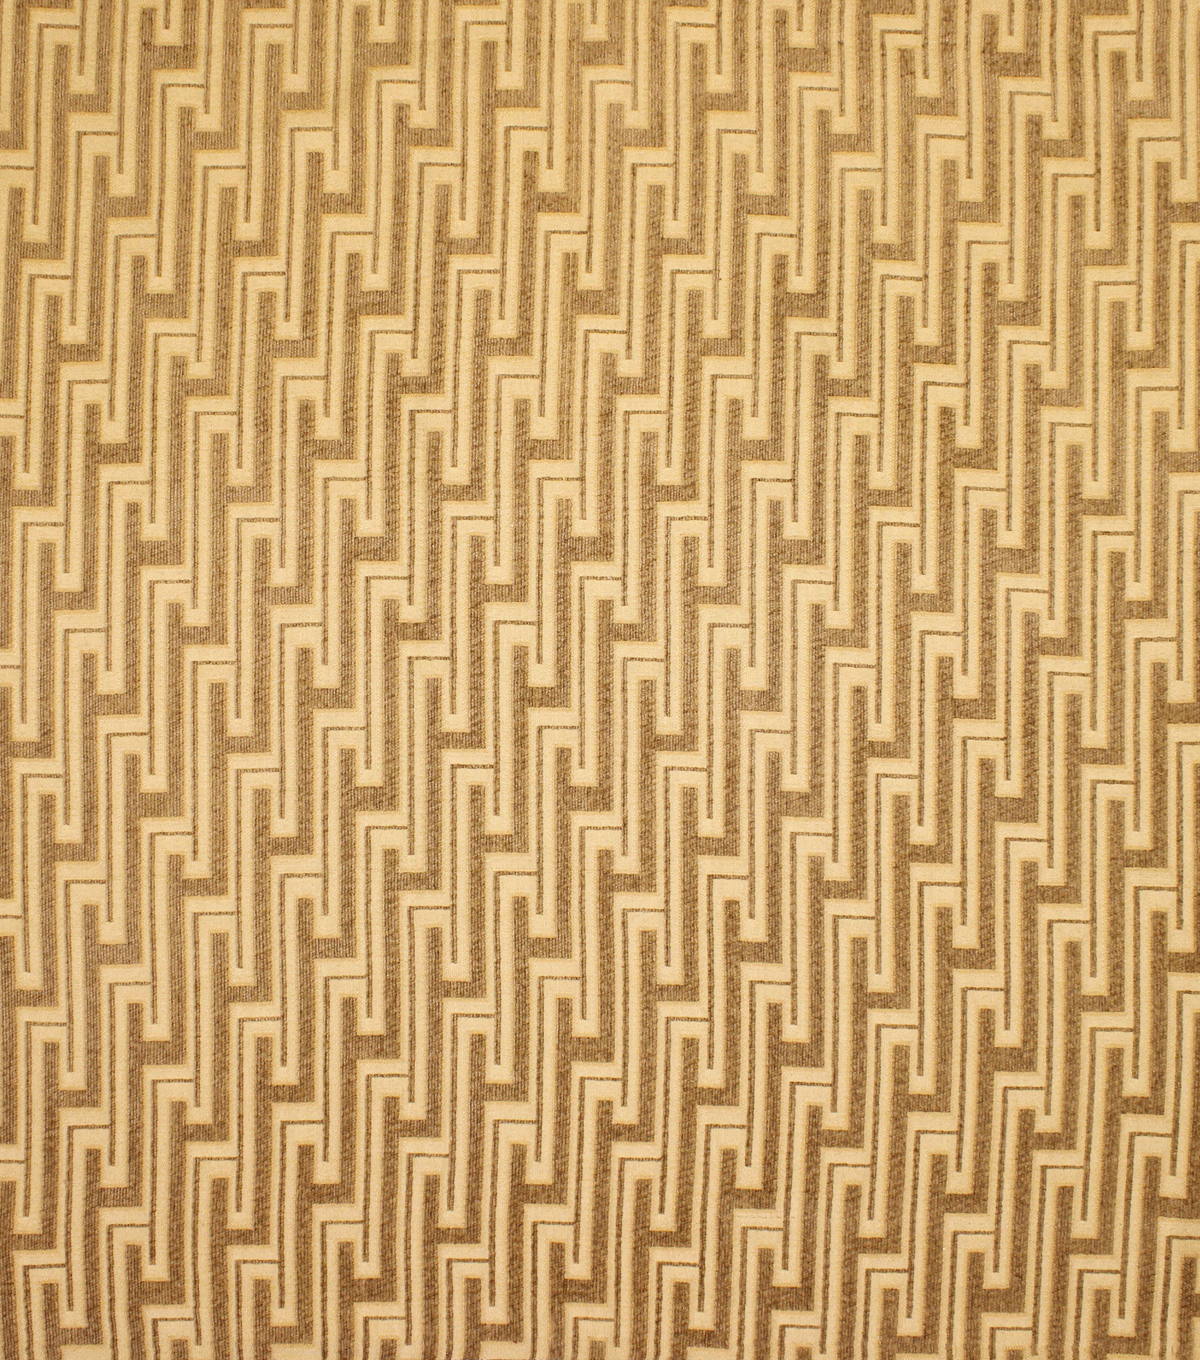 Home Decor 8\u0022x8\u0022 Fabric Swatch-Upholstery Fabric Barrow M8798-5184 Topaz